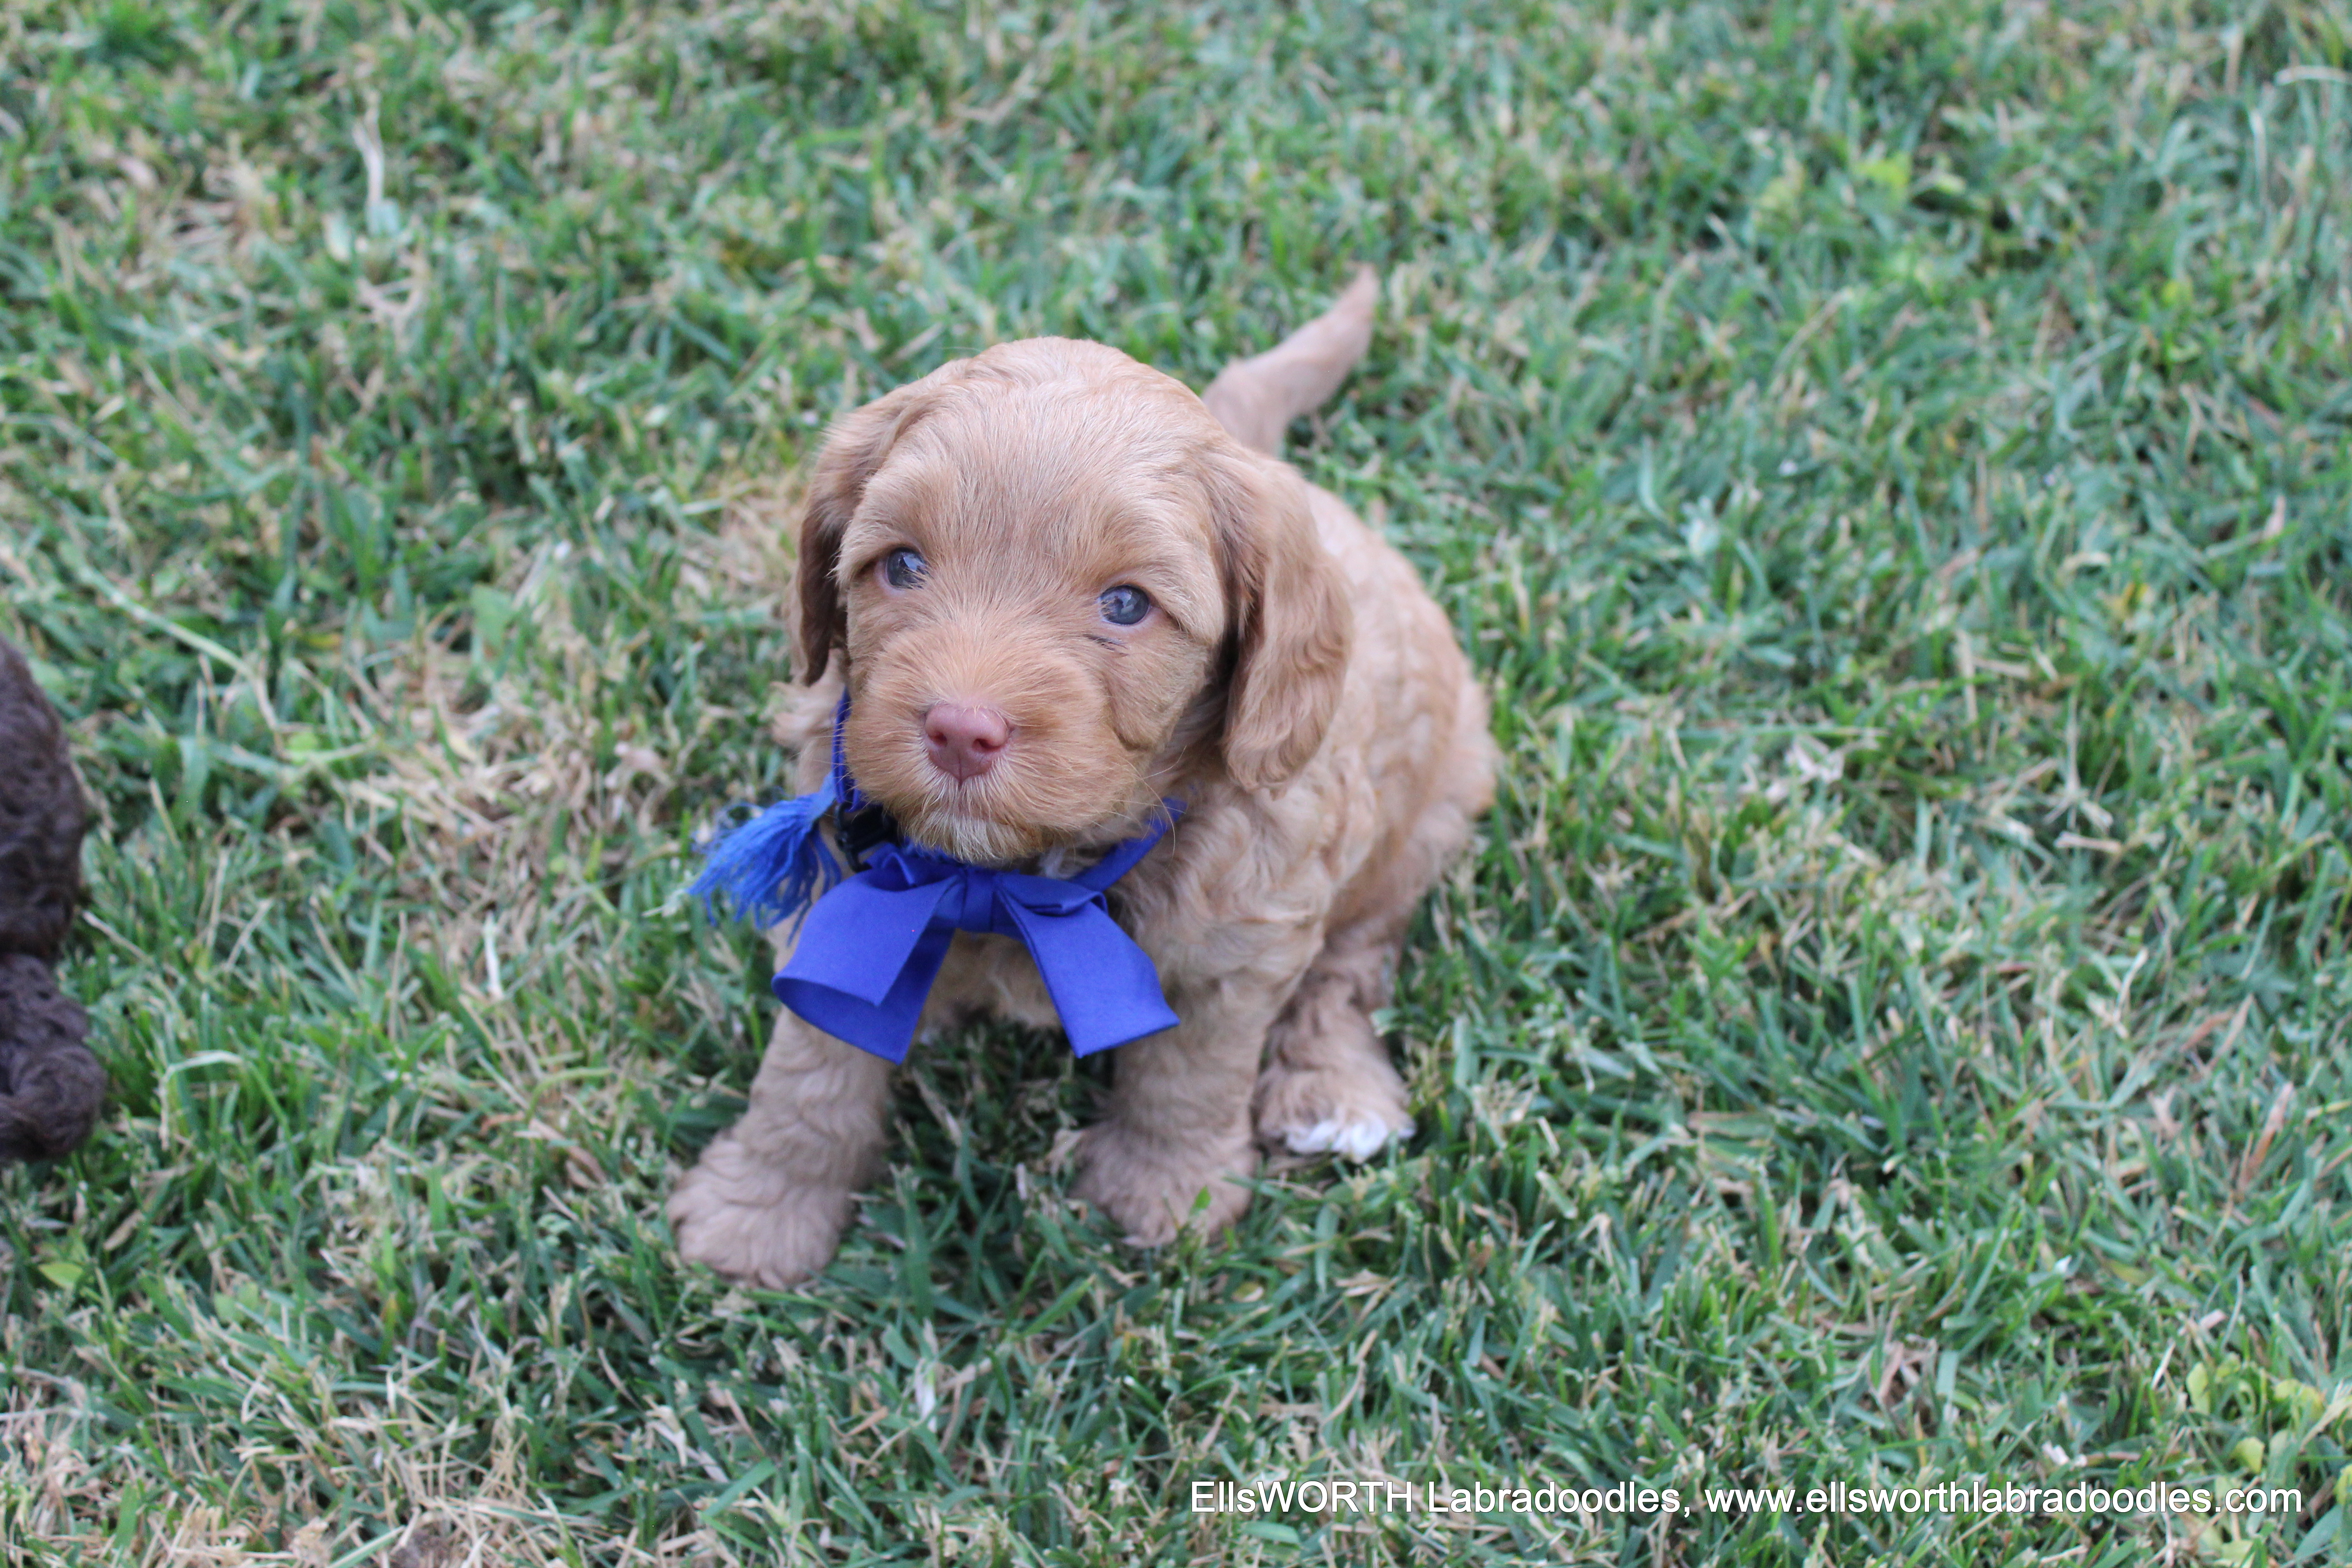 He gets a blue bow instead of a shirt